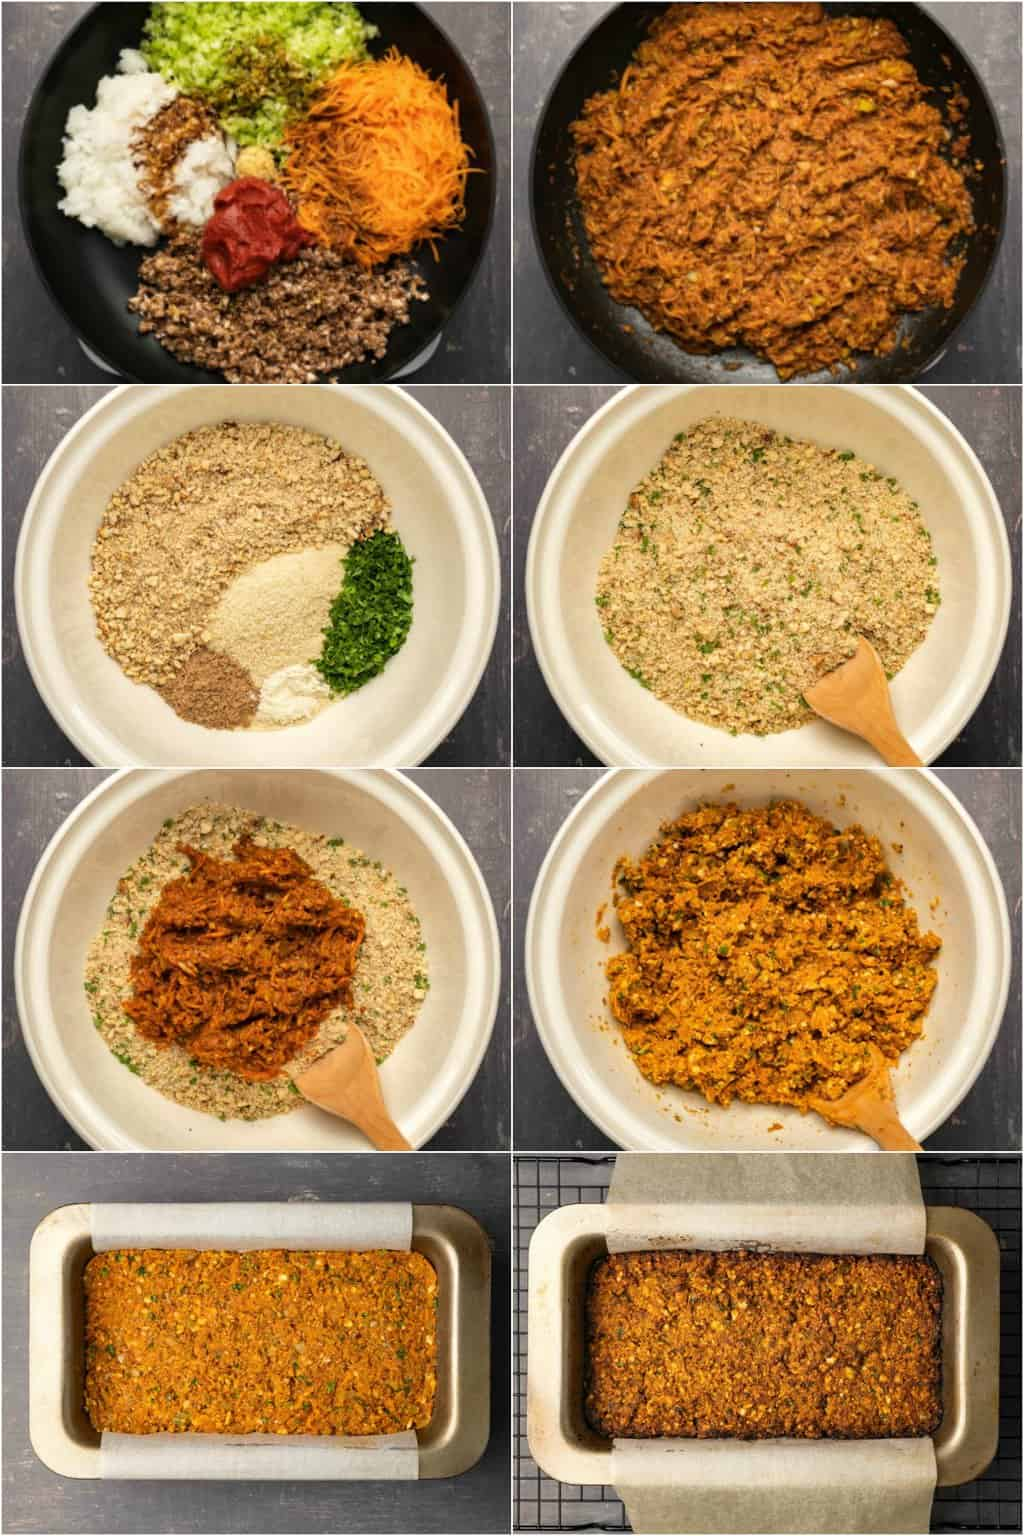 Step by step process photo collage of making a nut roast.